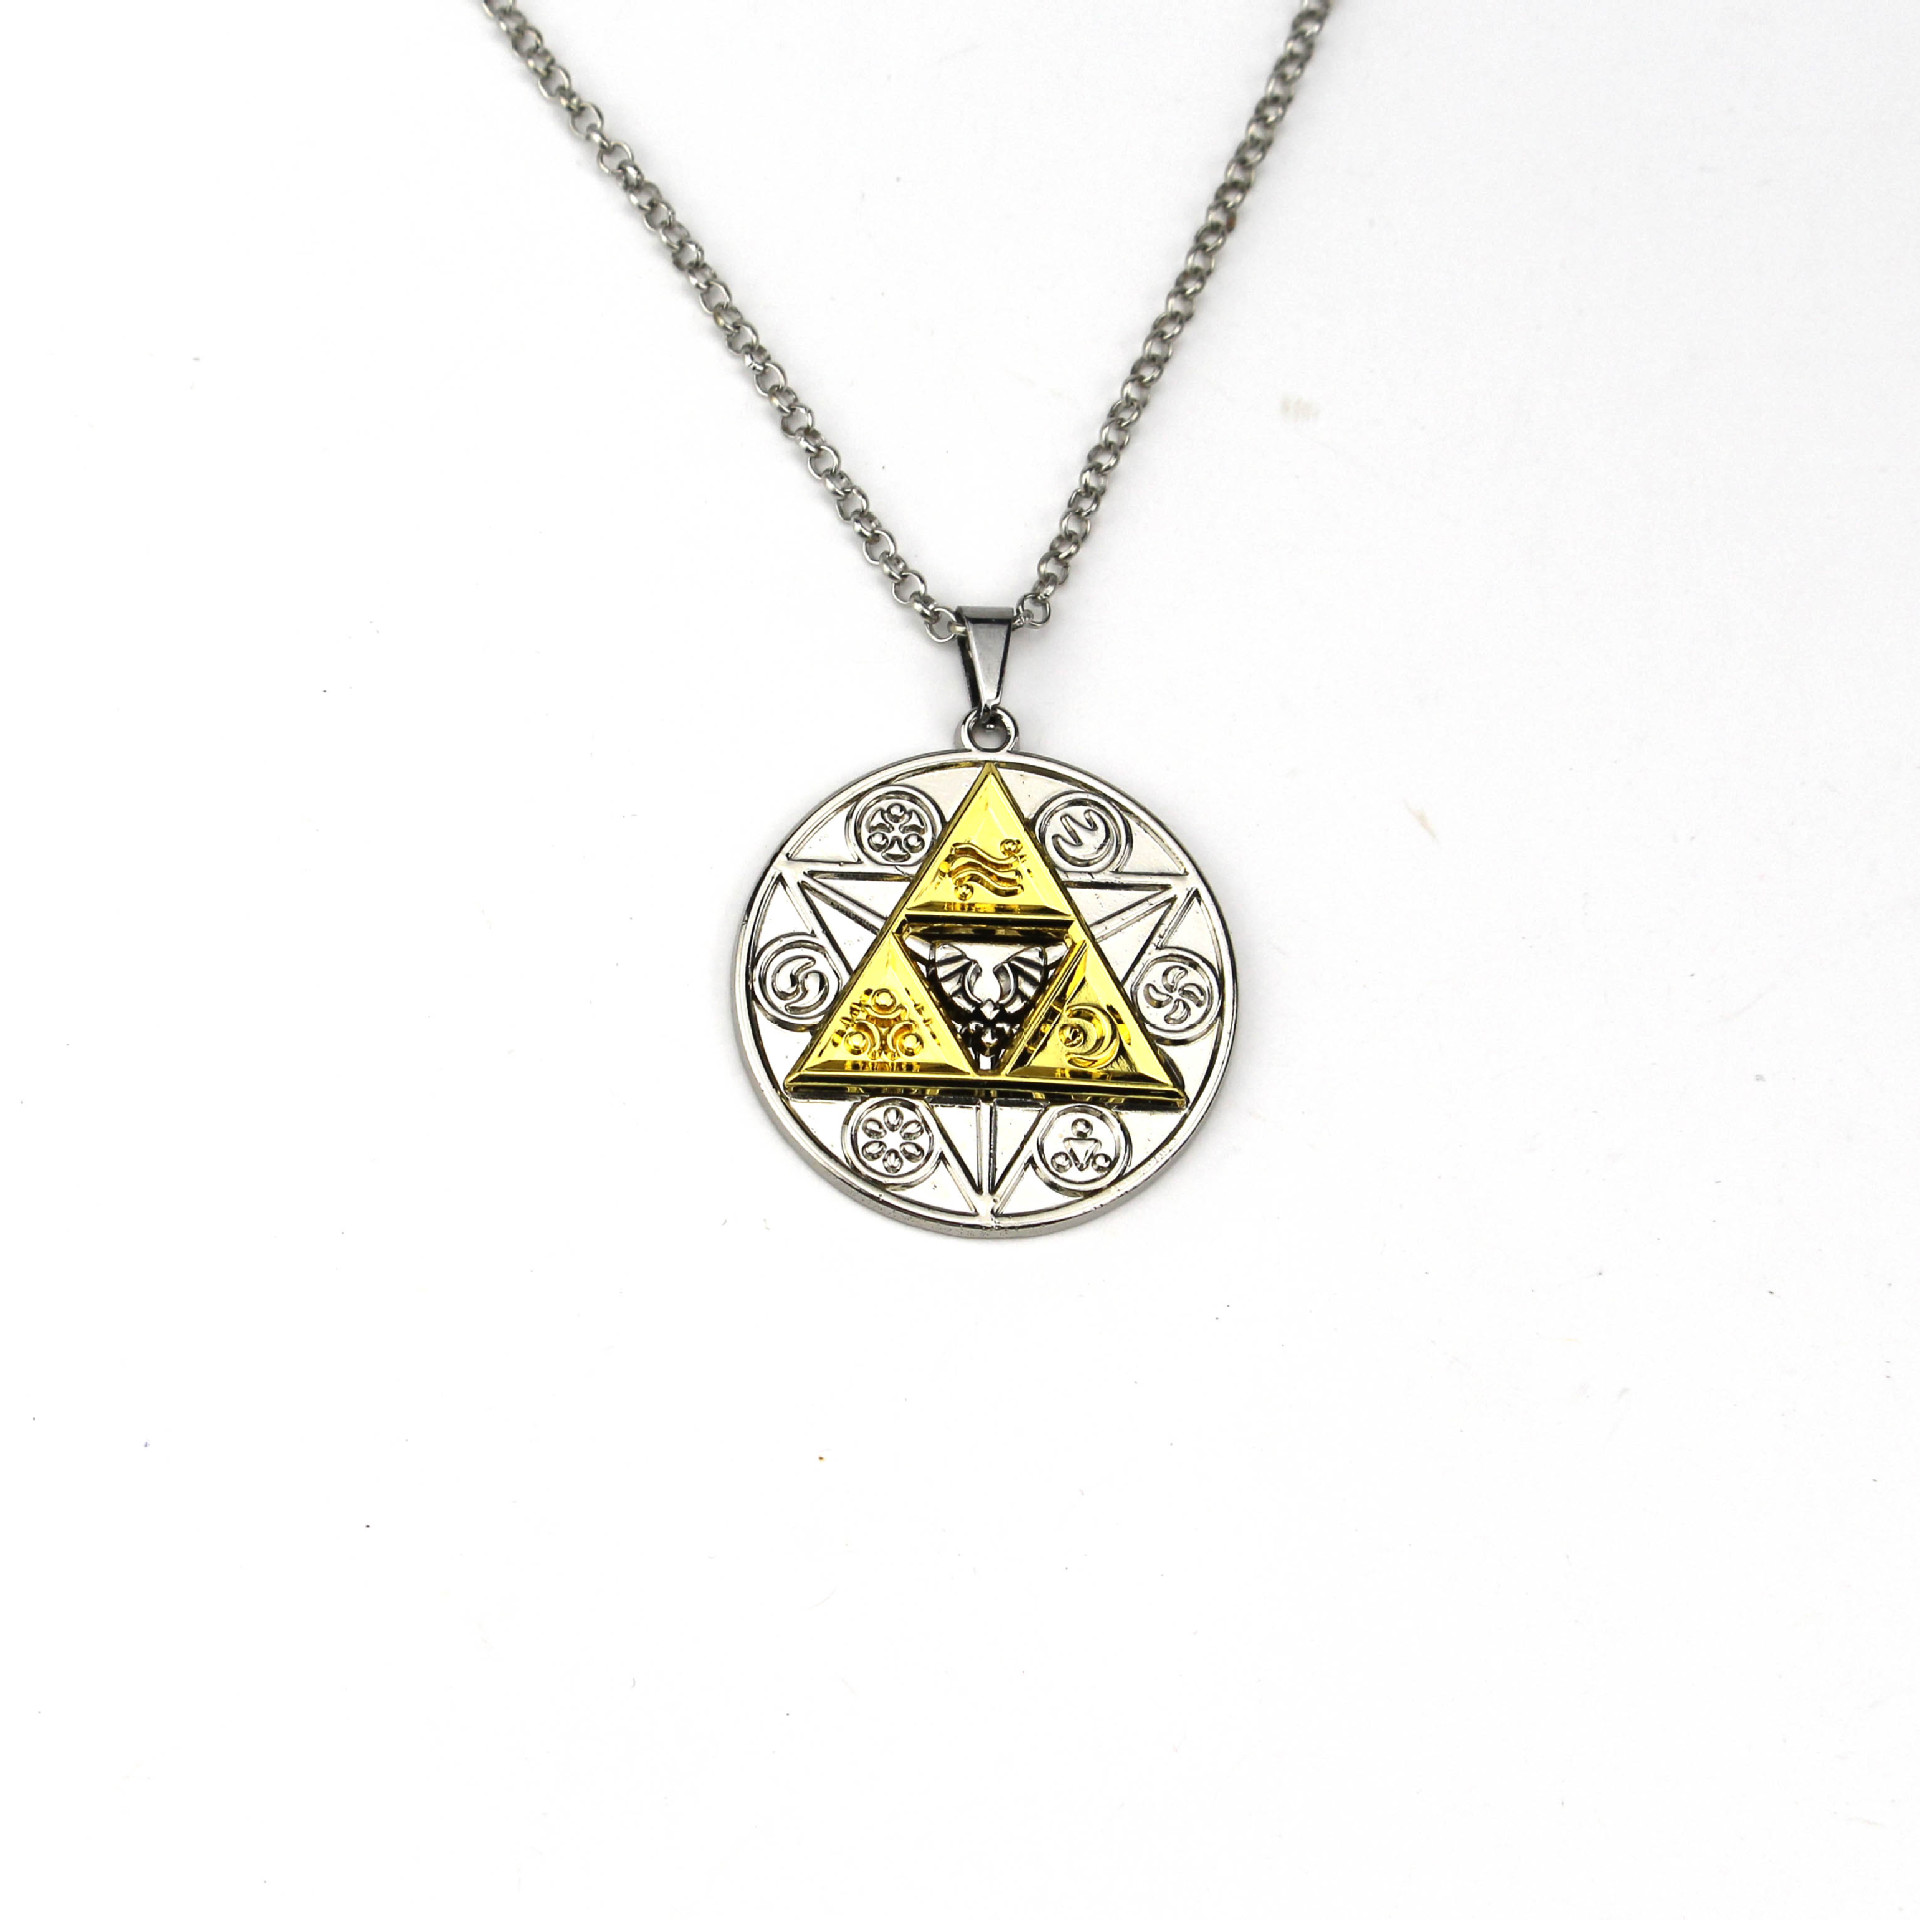 Game Anime The Legend Of Zelda Cosplay Costume Periphery Necklace Triangle Sign Time Gem Glass Pendant Gift Accessories Jewelry